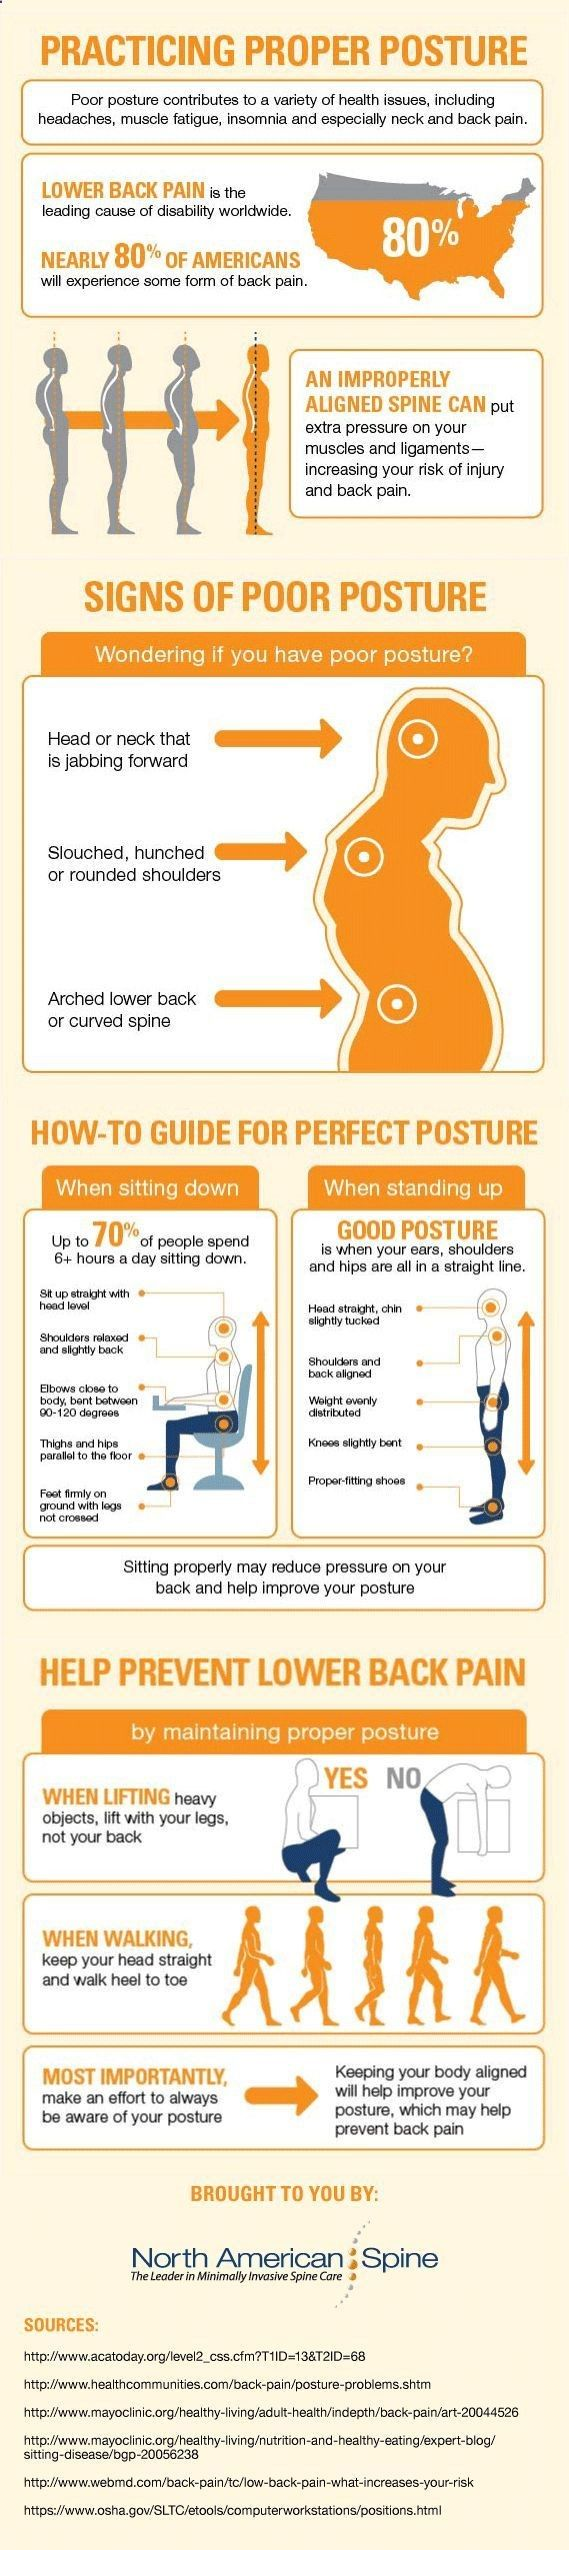 Practicing Proper Posture Infographic - Poor posture not only affects the way you look, it can lead to harmful health problems such as headaches, tension, soreness, insomnia and even neck and back pain. Then, straighten up your back with this how-to guide for perfect posture and best practices to prevent lower back pain - If you like this pin, repin it and follow our boards :-) #FastSimpleFitness - www.facebook.com/FastSimpleFitness